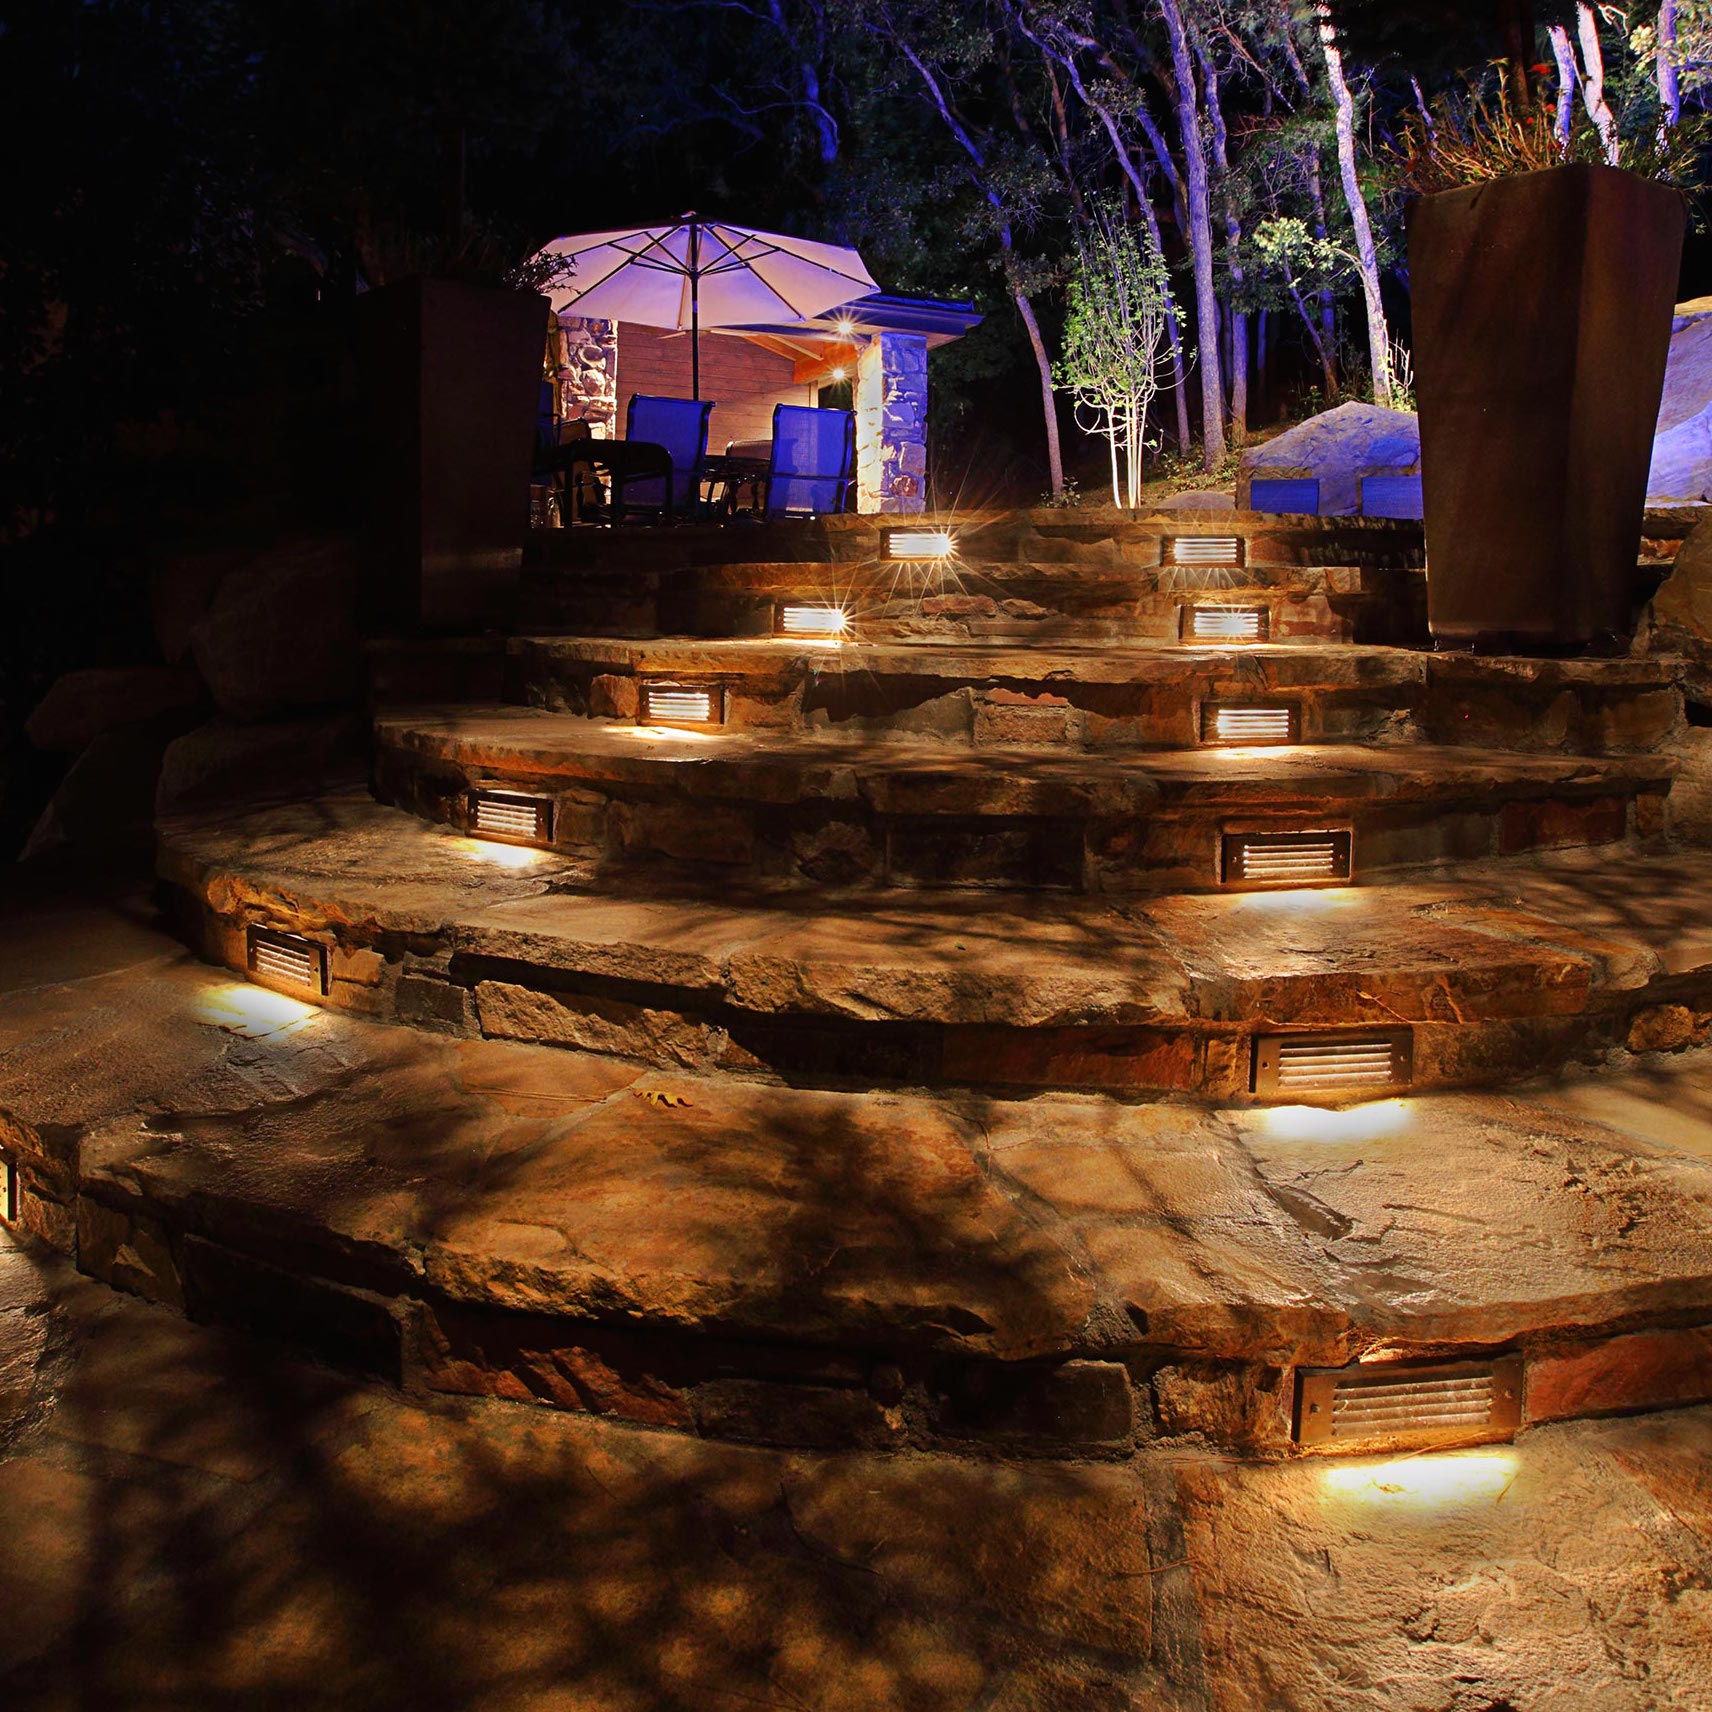 Tread Lighting In Your Outdoor Kitchen Lighting Will Help Keep You Safe.